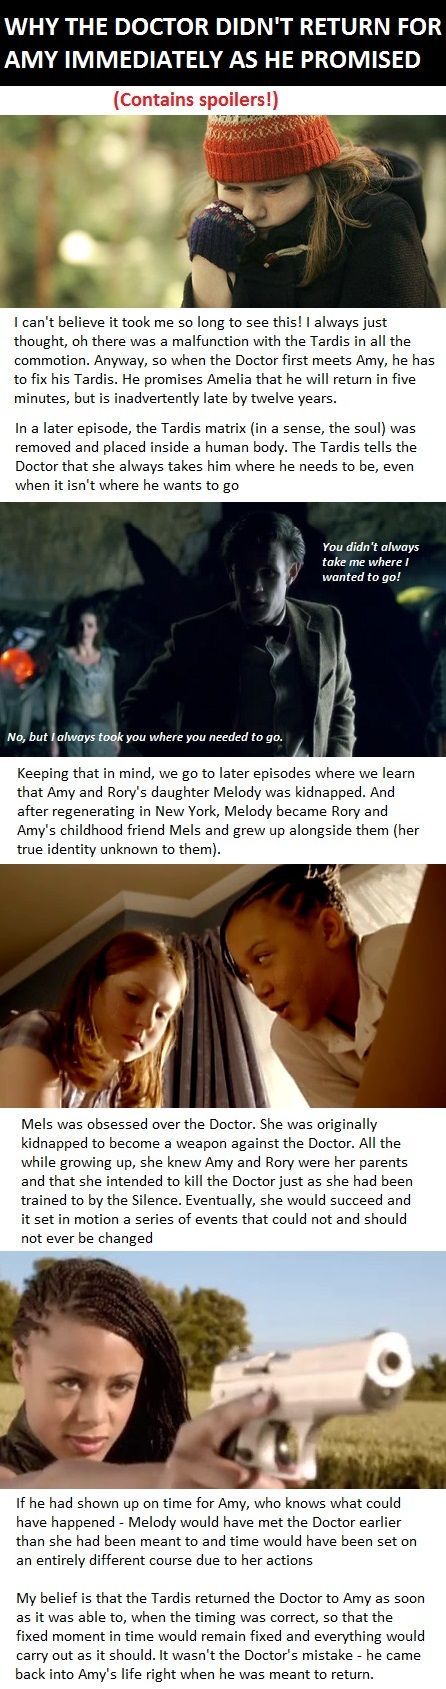 Why the Doctor didn't come back for Amy for 12 years - the whole course of history would change if he had been on time! HIS personal destiny would have changed if he had been on time! If Mels were to succeed in killing him at her younger age, then Rory and Amy would never had ended up having River in the Tardis while traveling, resulting in a regenerating, kidnapped baby trained to destroy the Doctor, but in that case, who would have killed the Doctor? Was the Tardis avoiding paradoxes? Yes.